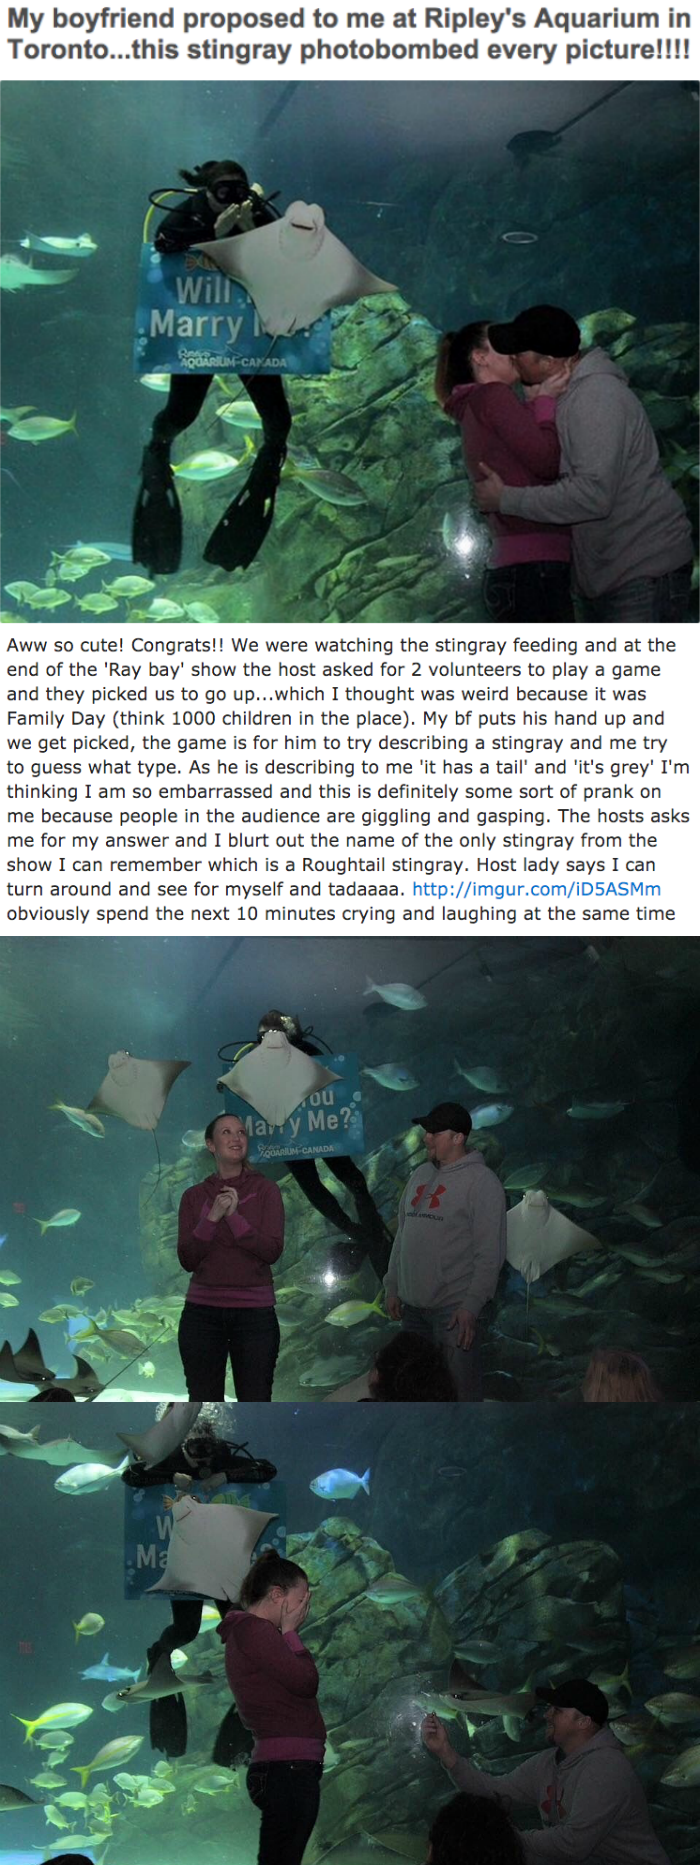 funny dating image stingray photobombs engagement proposal at aquarium